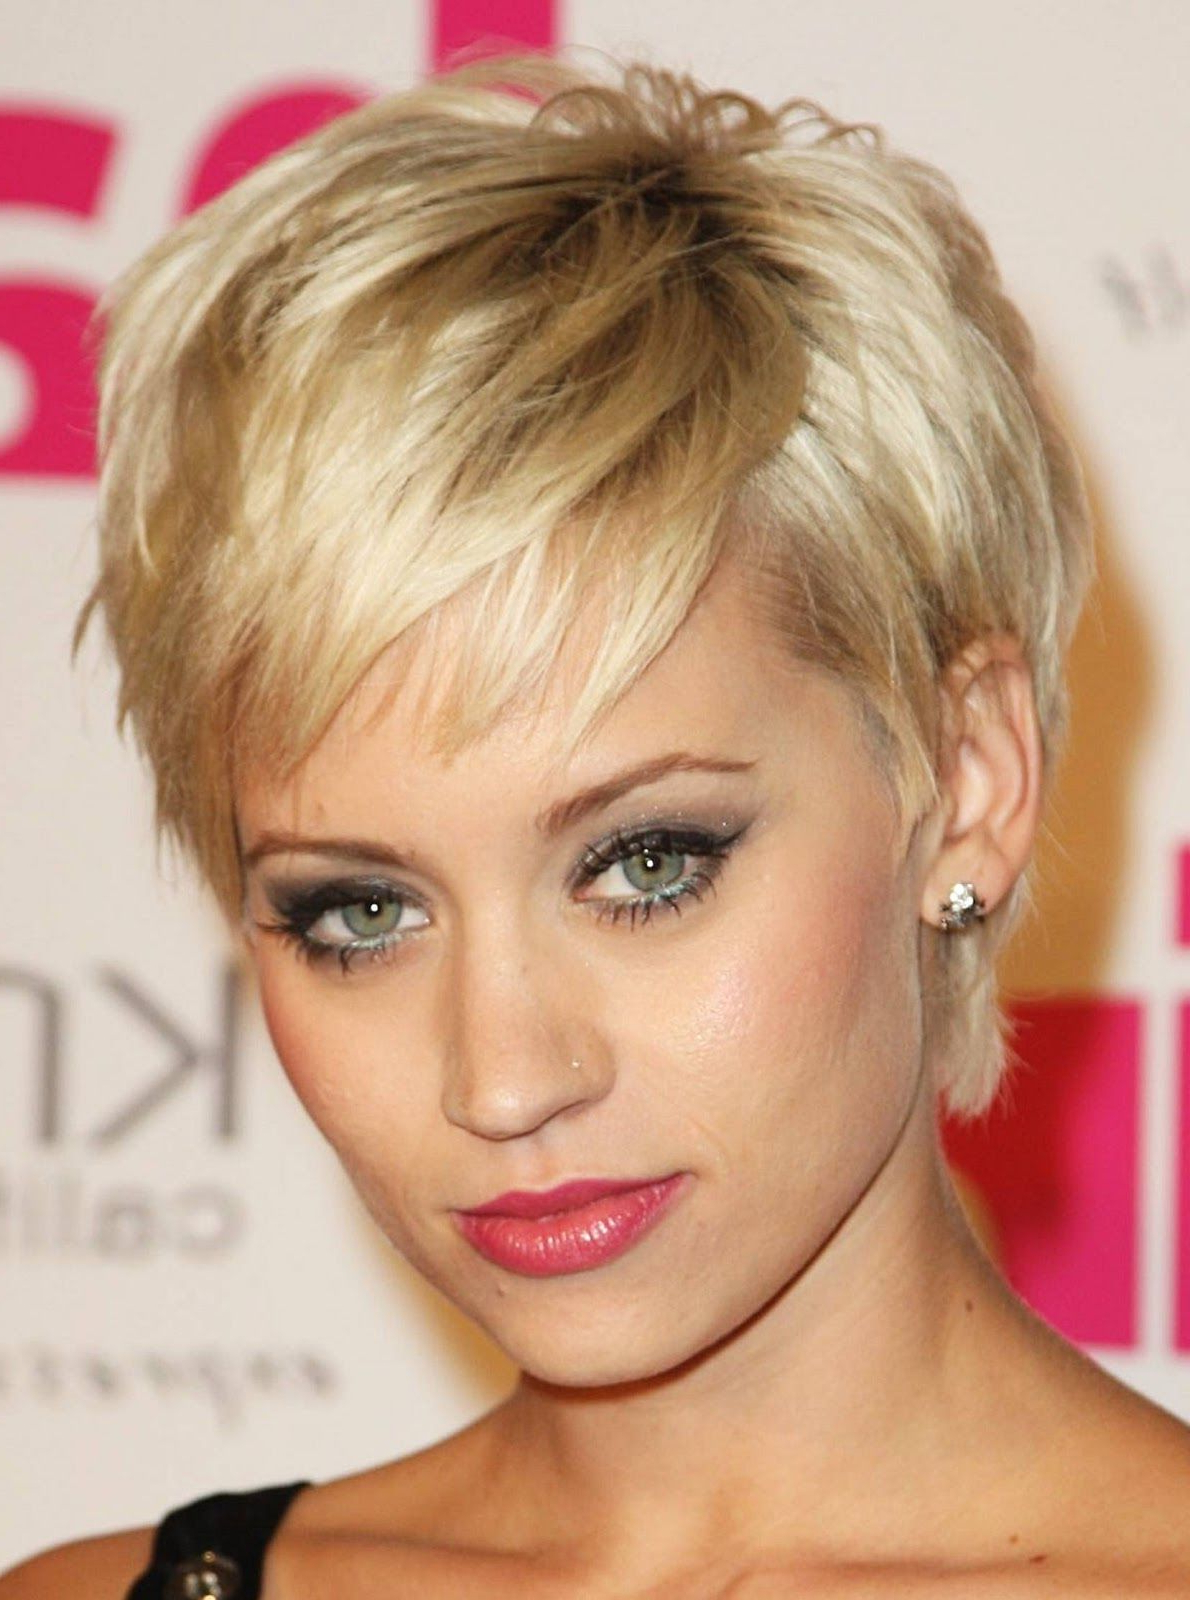 Easy Maintenance Haircuts For Women | Short Hairstyles For Women Throughout Short Trendy Hairstyles For Women (View 8 of 25)